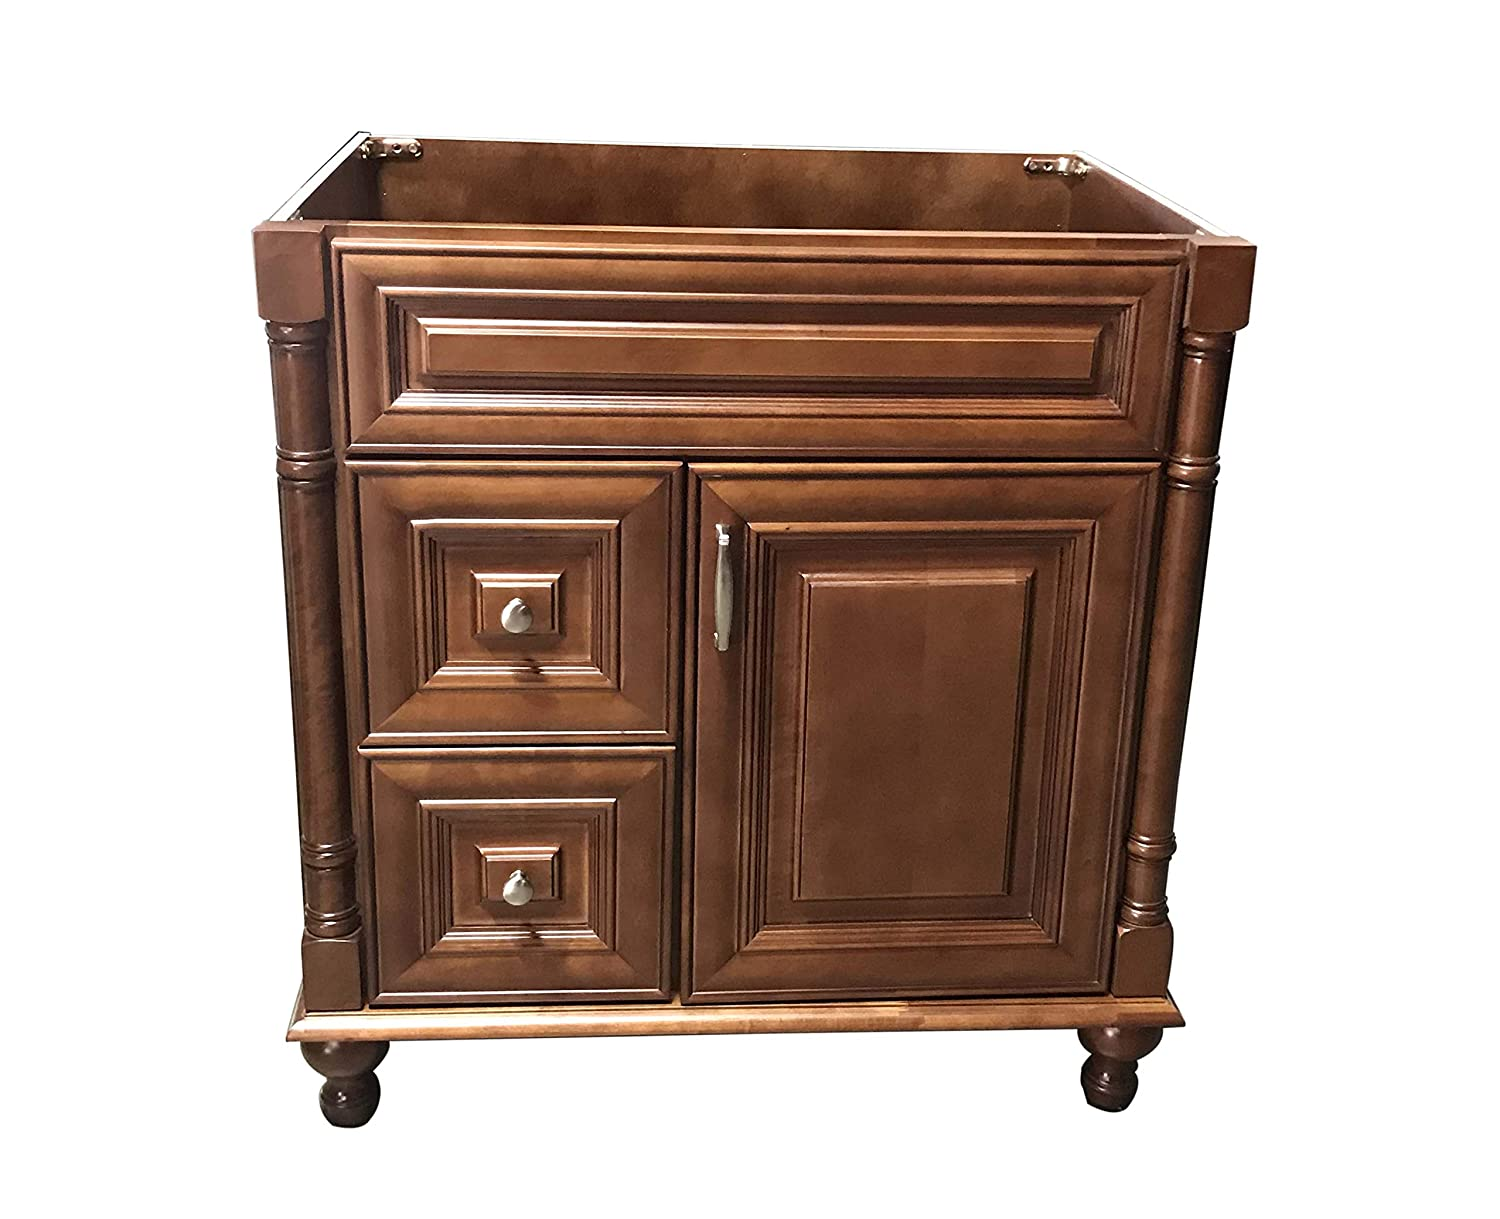 Maple Walnut solid wood Single Bathroom Vanity Base Cabinet 30 W x 21 D x 32 H Left Drawers